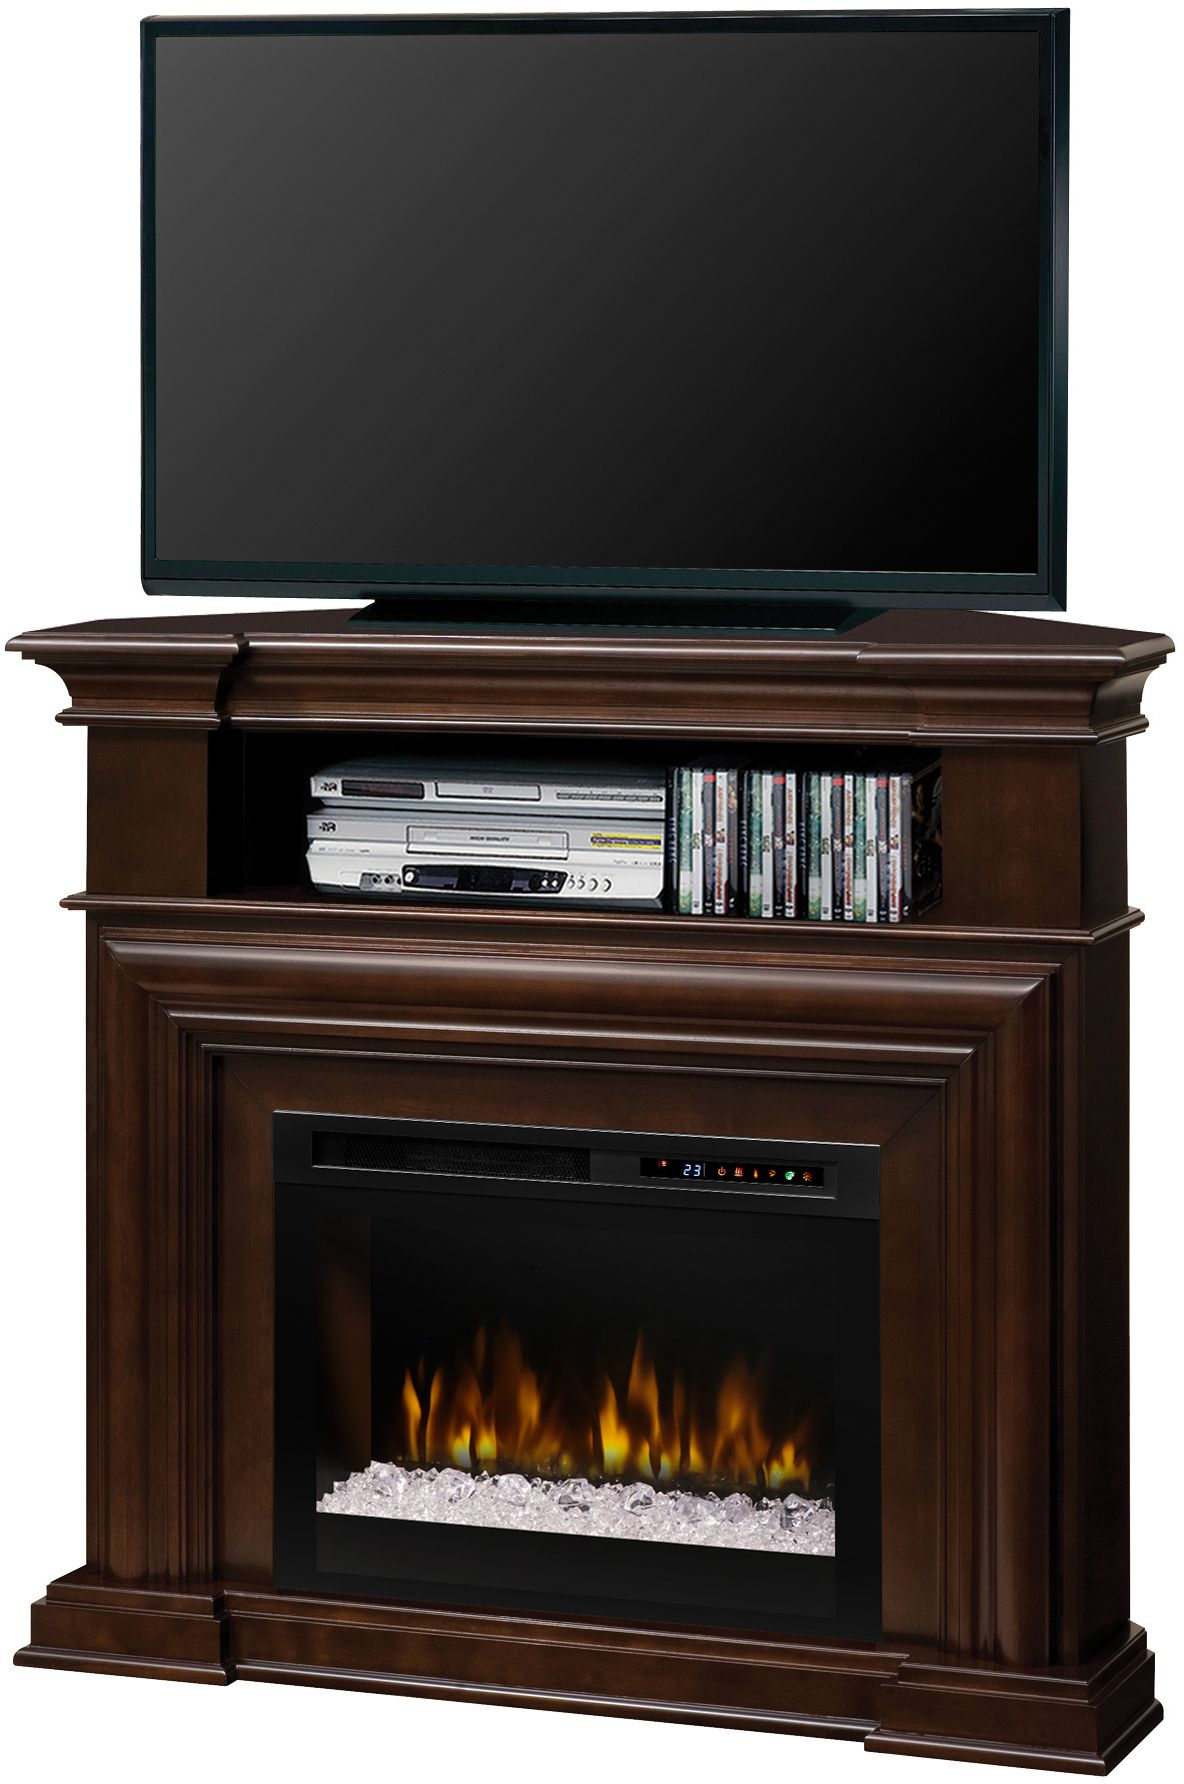 Dimplex montgomery espresso media console electric - Going to bed with embers in fireplace ...